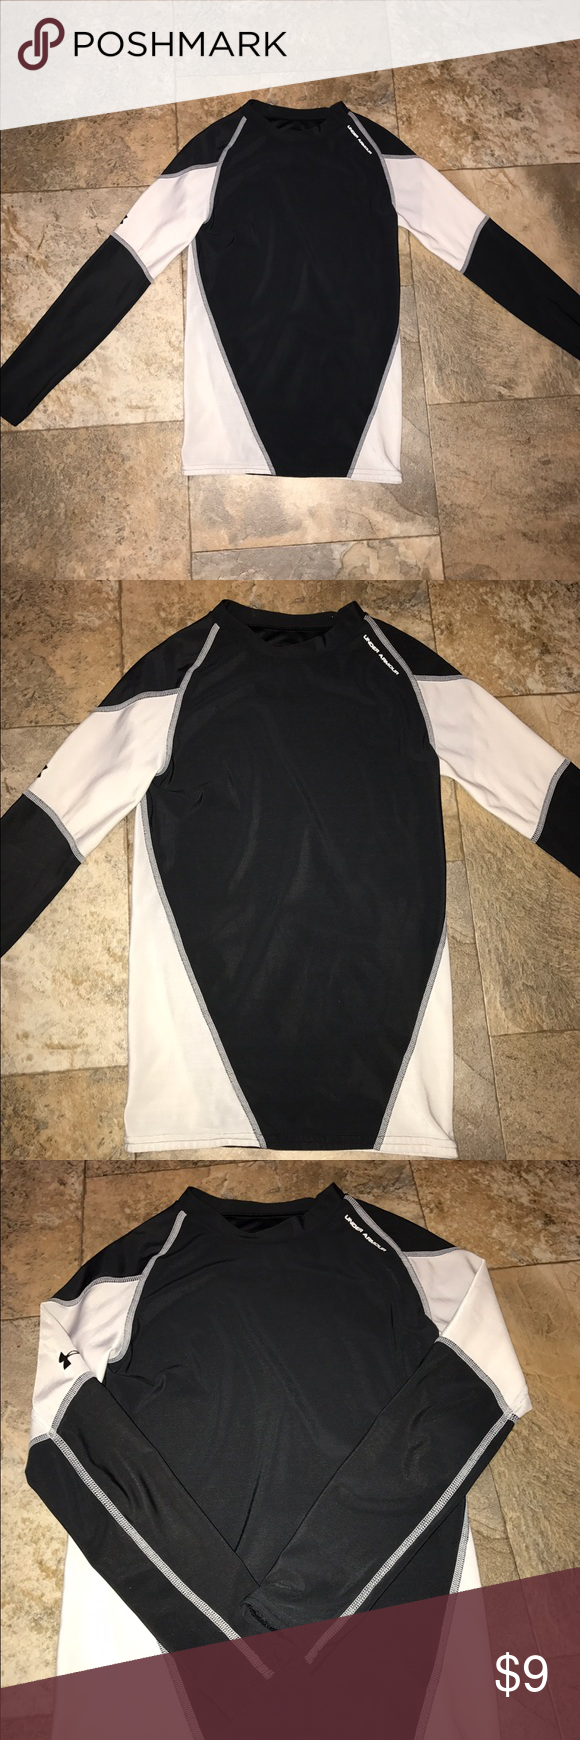 Boys under armour cold gear shirt size small Boys under armour cold gear shirt size small great used condition Under Armour Shirts & Tops Tees - Long Sleeve